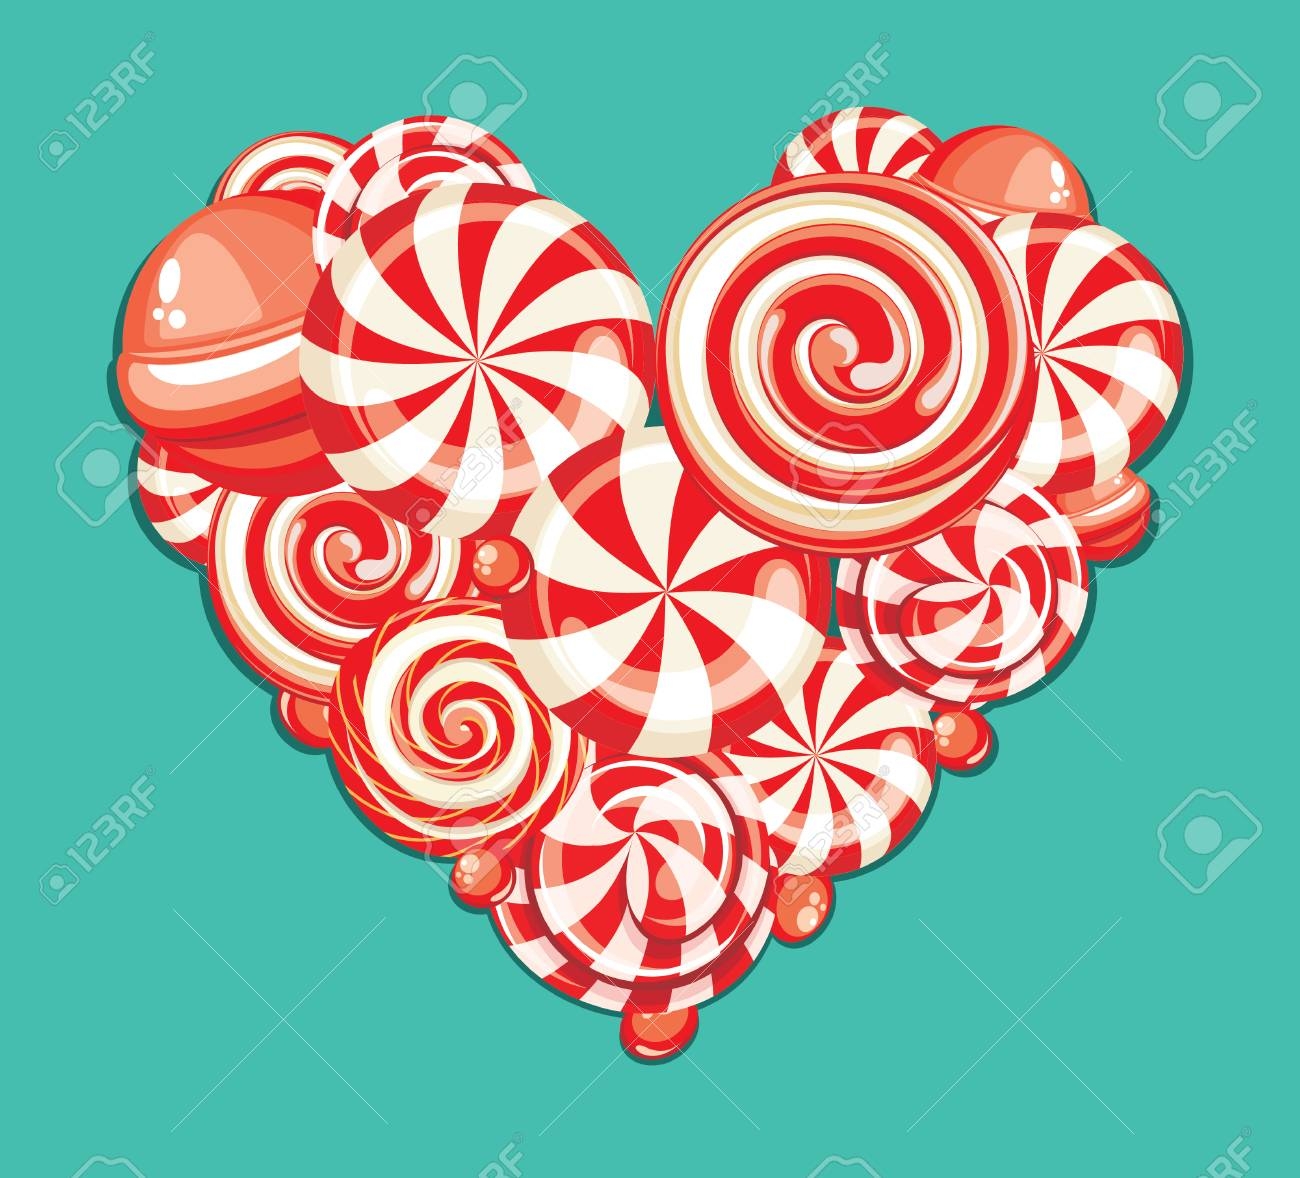 Valentines day greeting card with heart shaped sweet candy valentines day greeting card with heart shaped sweet candy lollipops stock vector 35652469 m4hsunfo